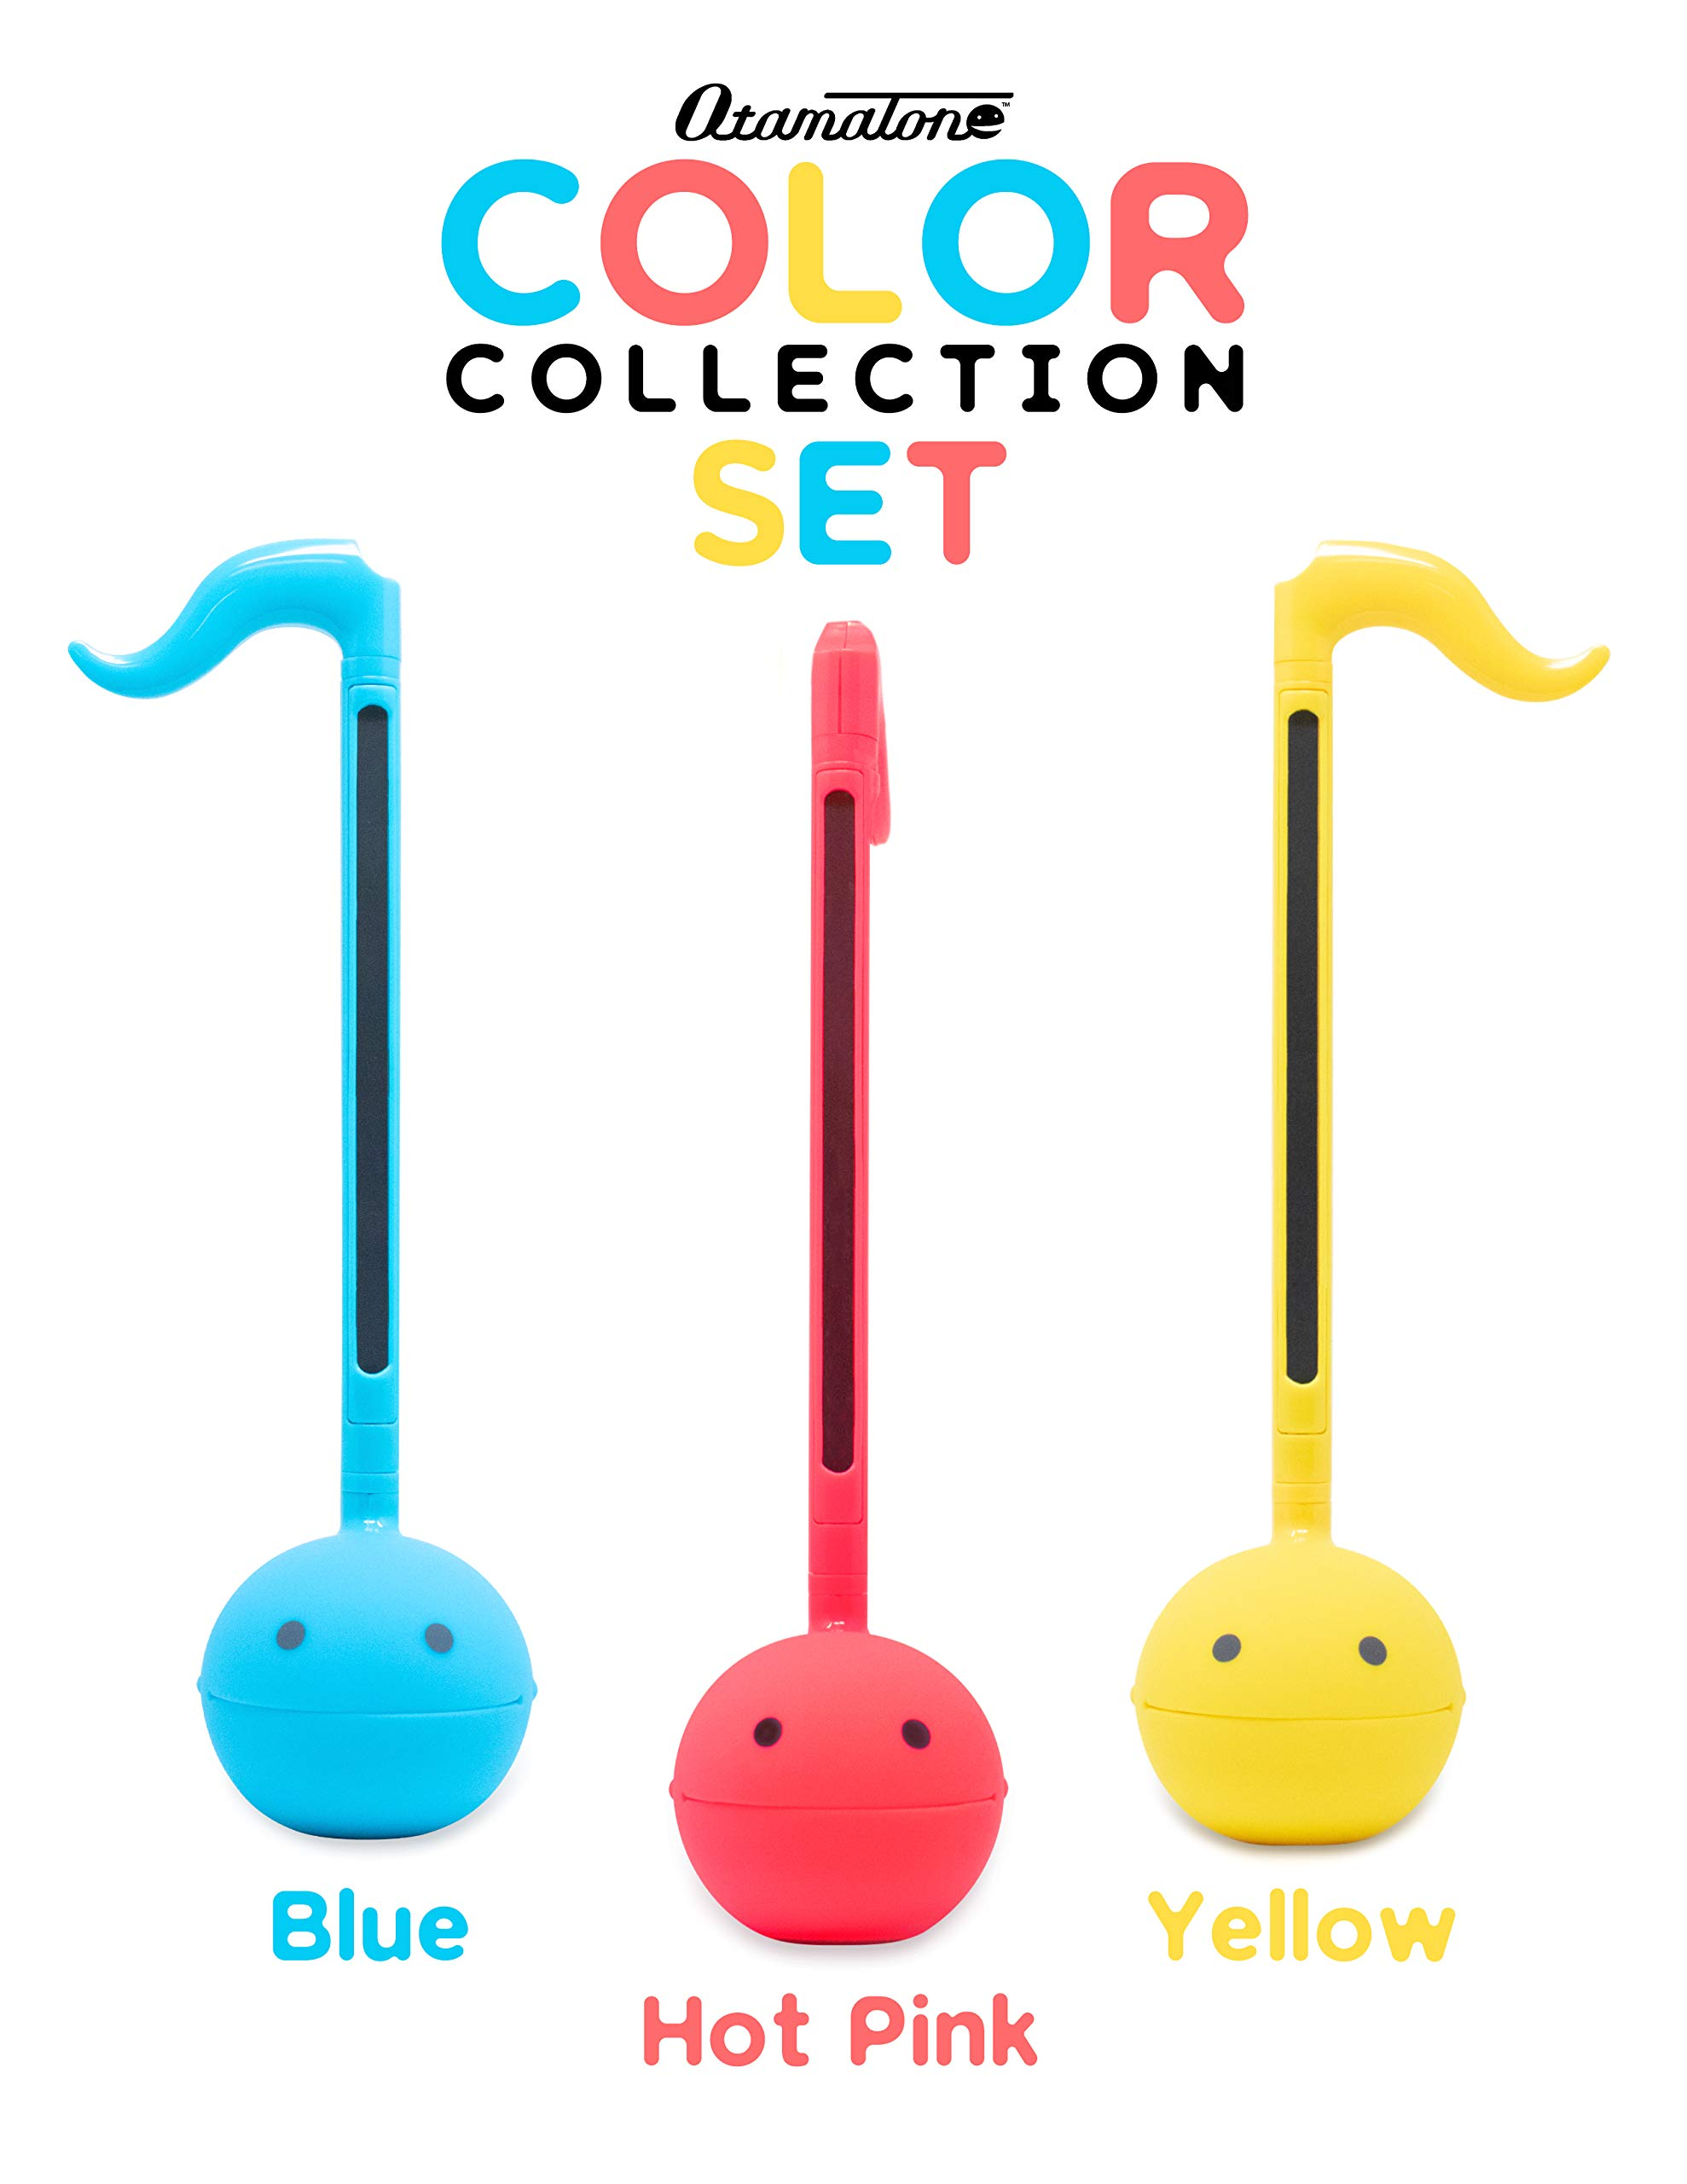 Otamatone''SPECIAL COLOR COLLECTION SET'' [Blue + Hot Pink + Yellow] Japanese Electronic Musical Instrument Portable Synthesizer from Japan by Cube/Maywa Denki [Japanese Edition] by Otamatone